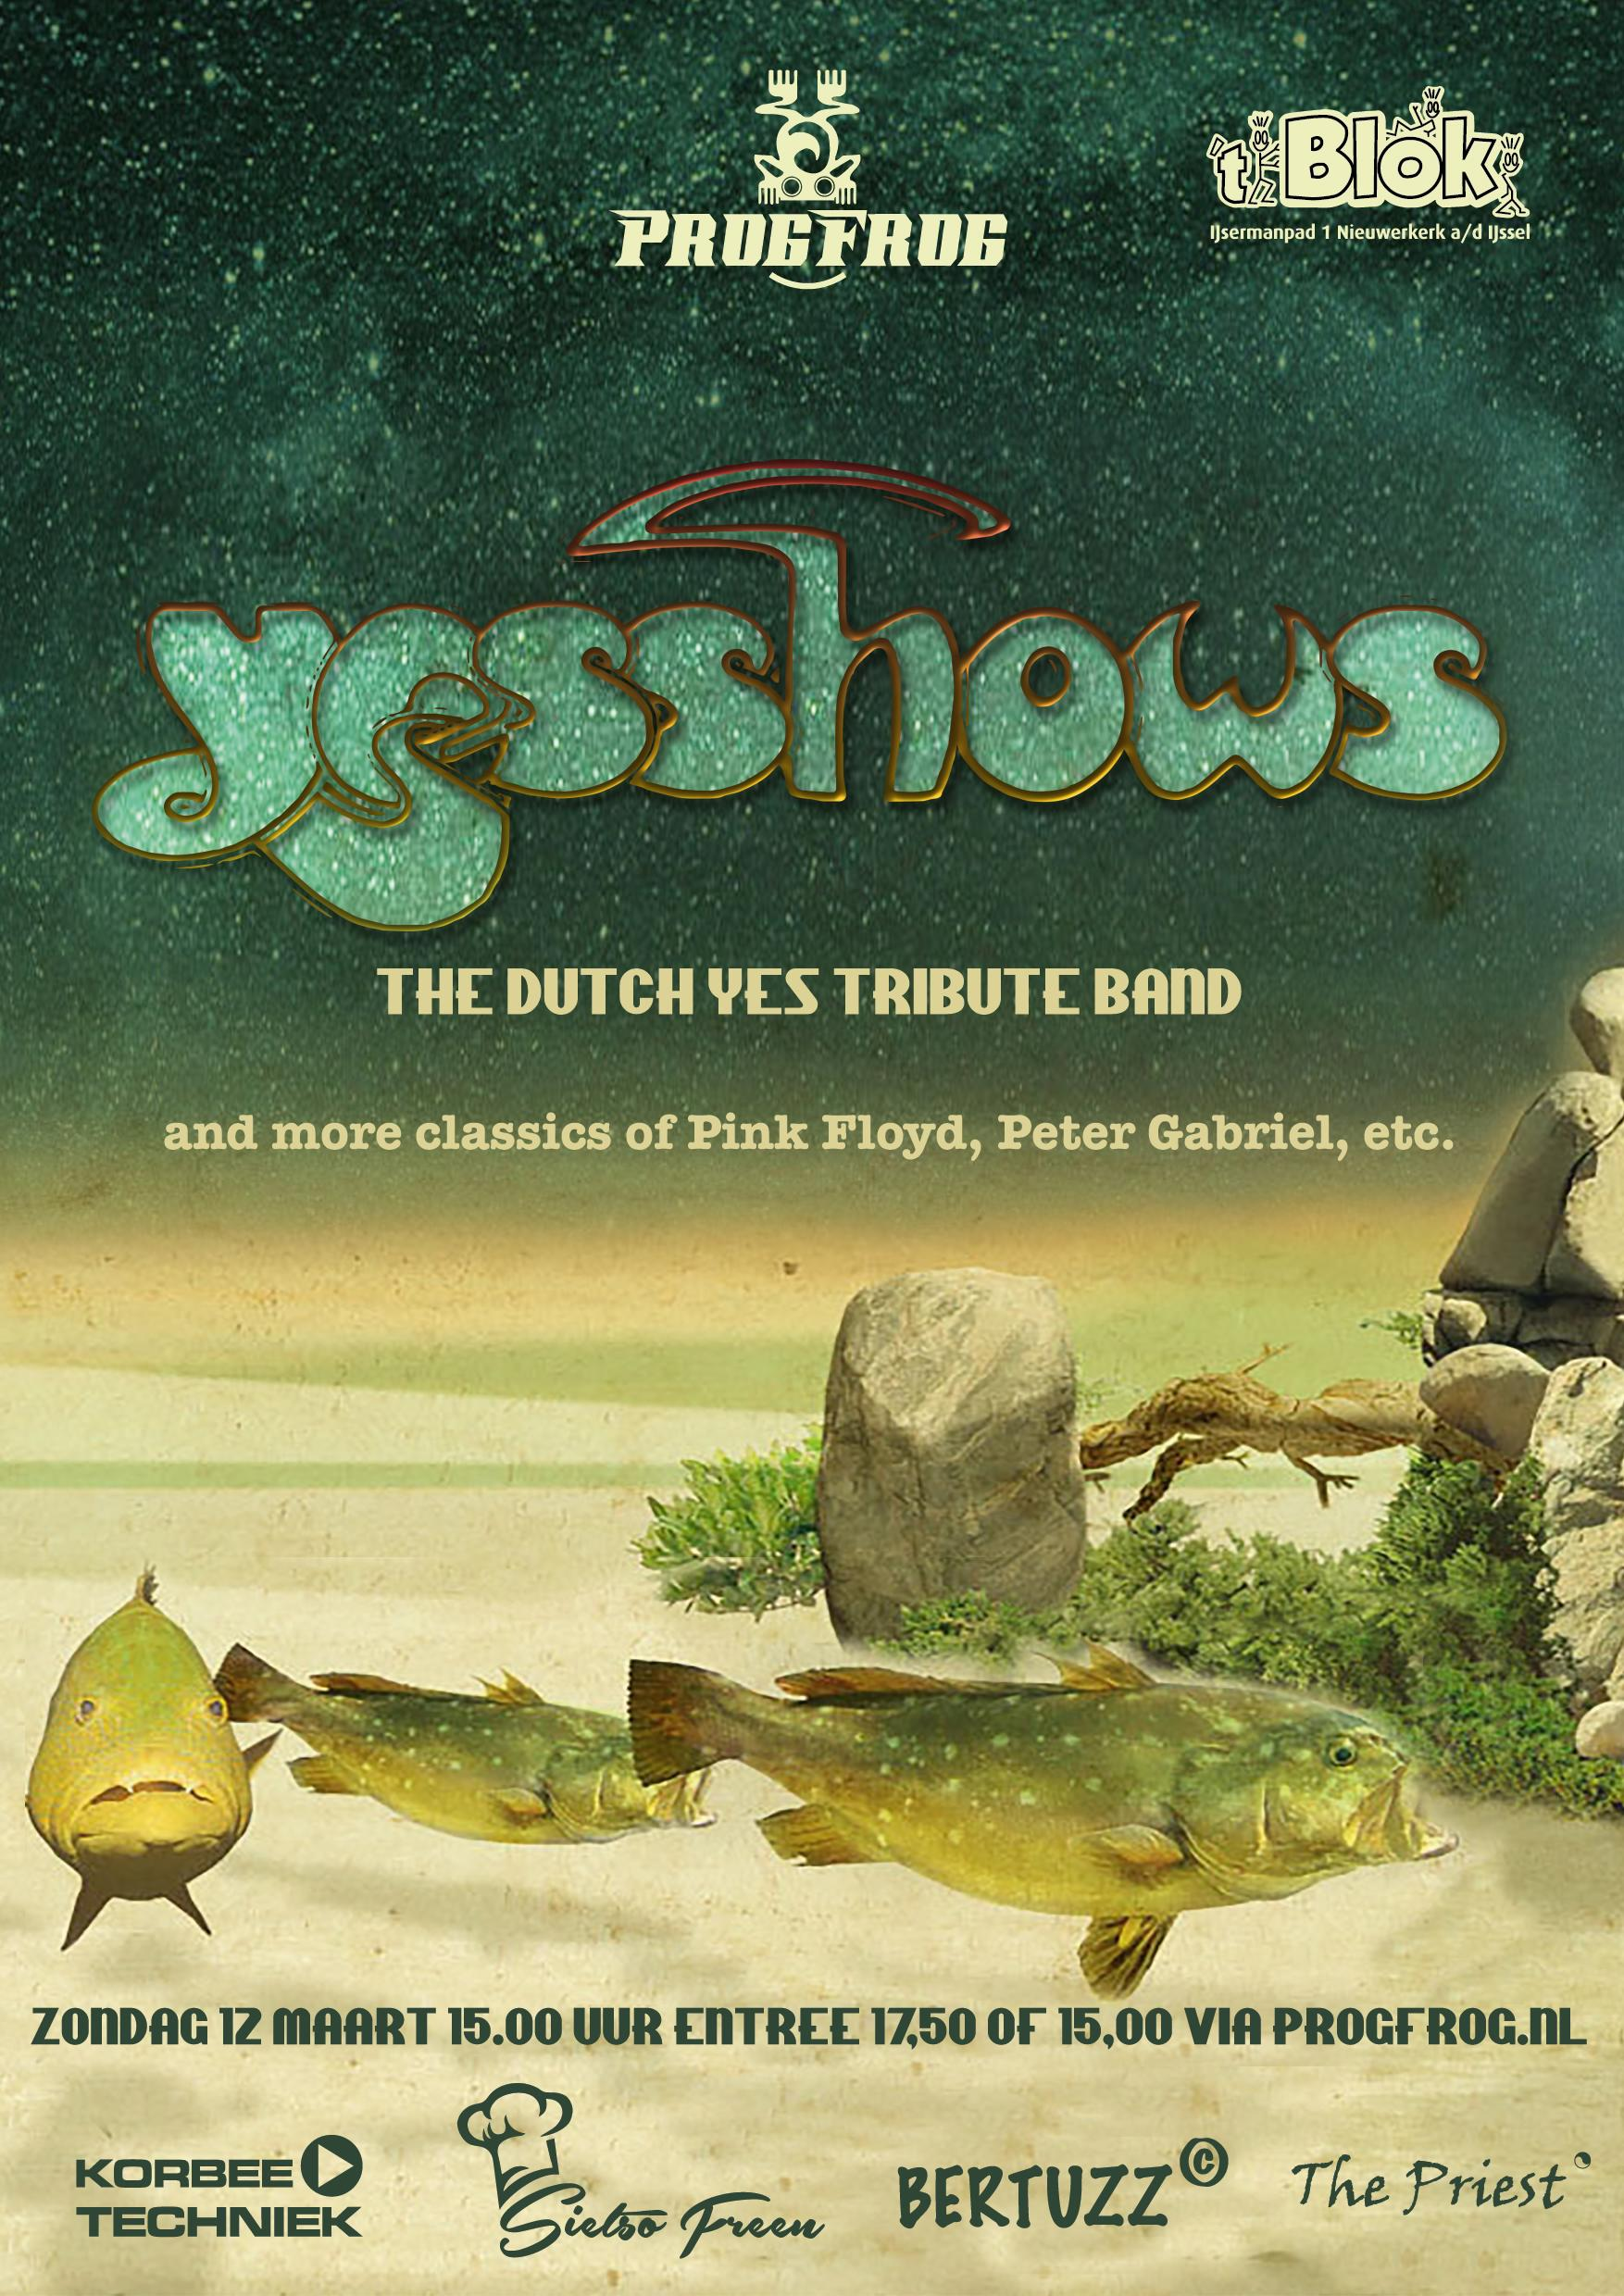 YESSHOWS & other symfo classics (Peter Gabriel, Pink Floyd etc.)